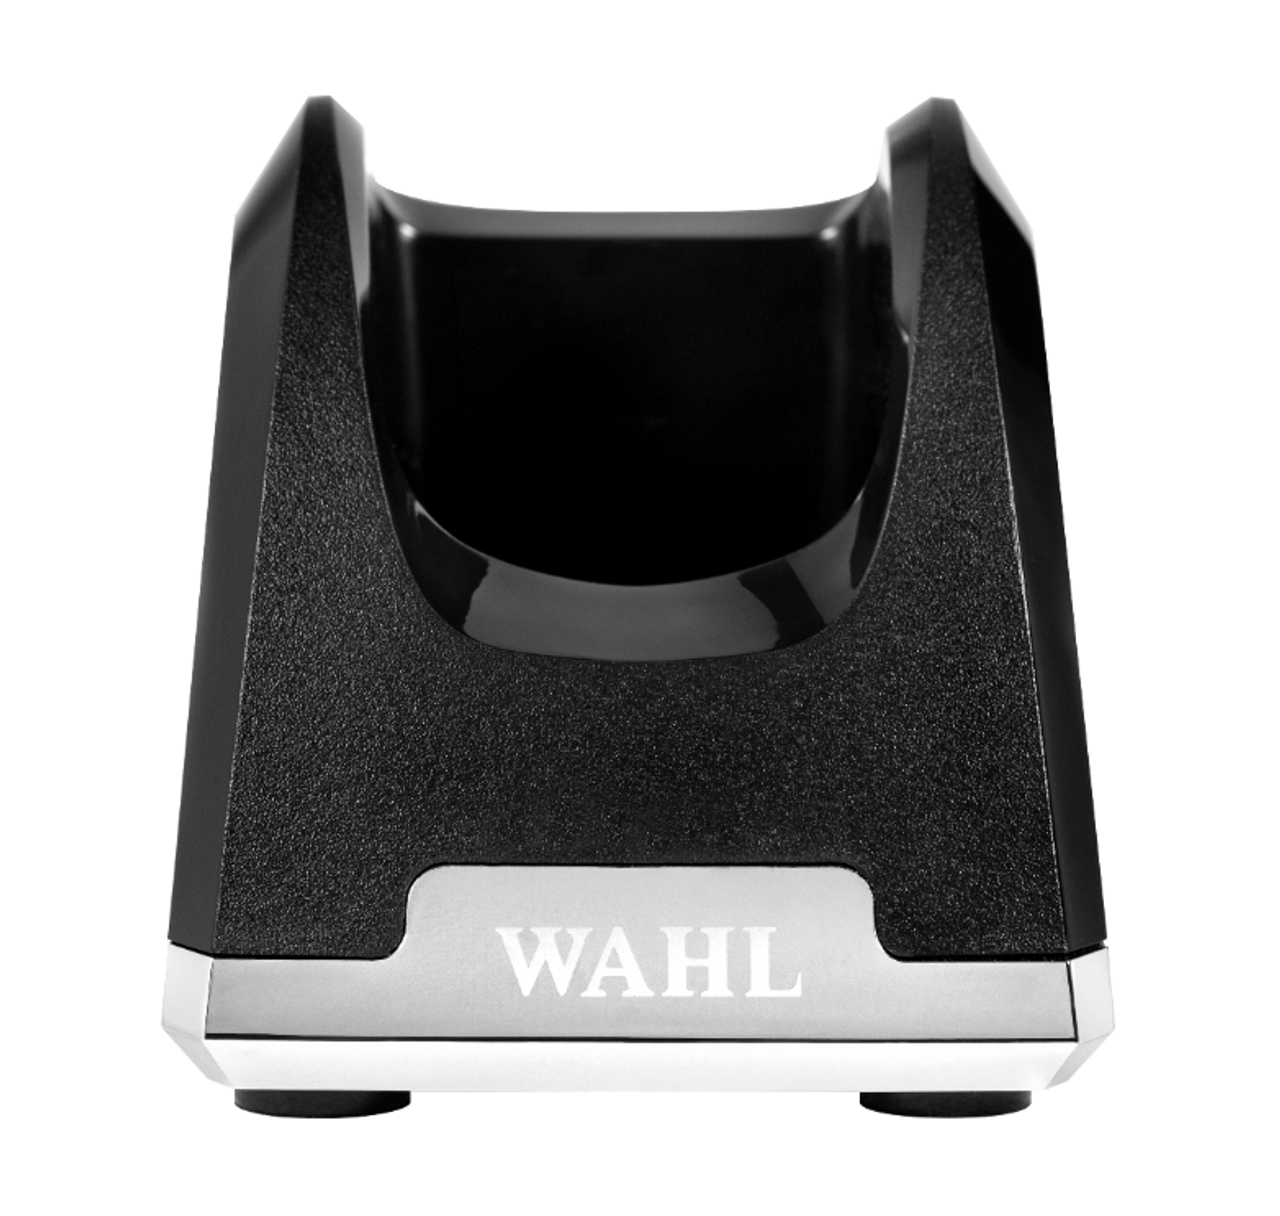 Wahl Cordless Clipper Charging Stand